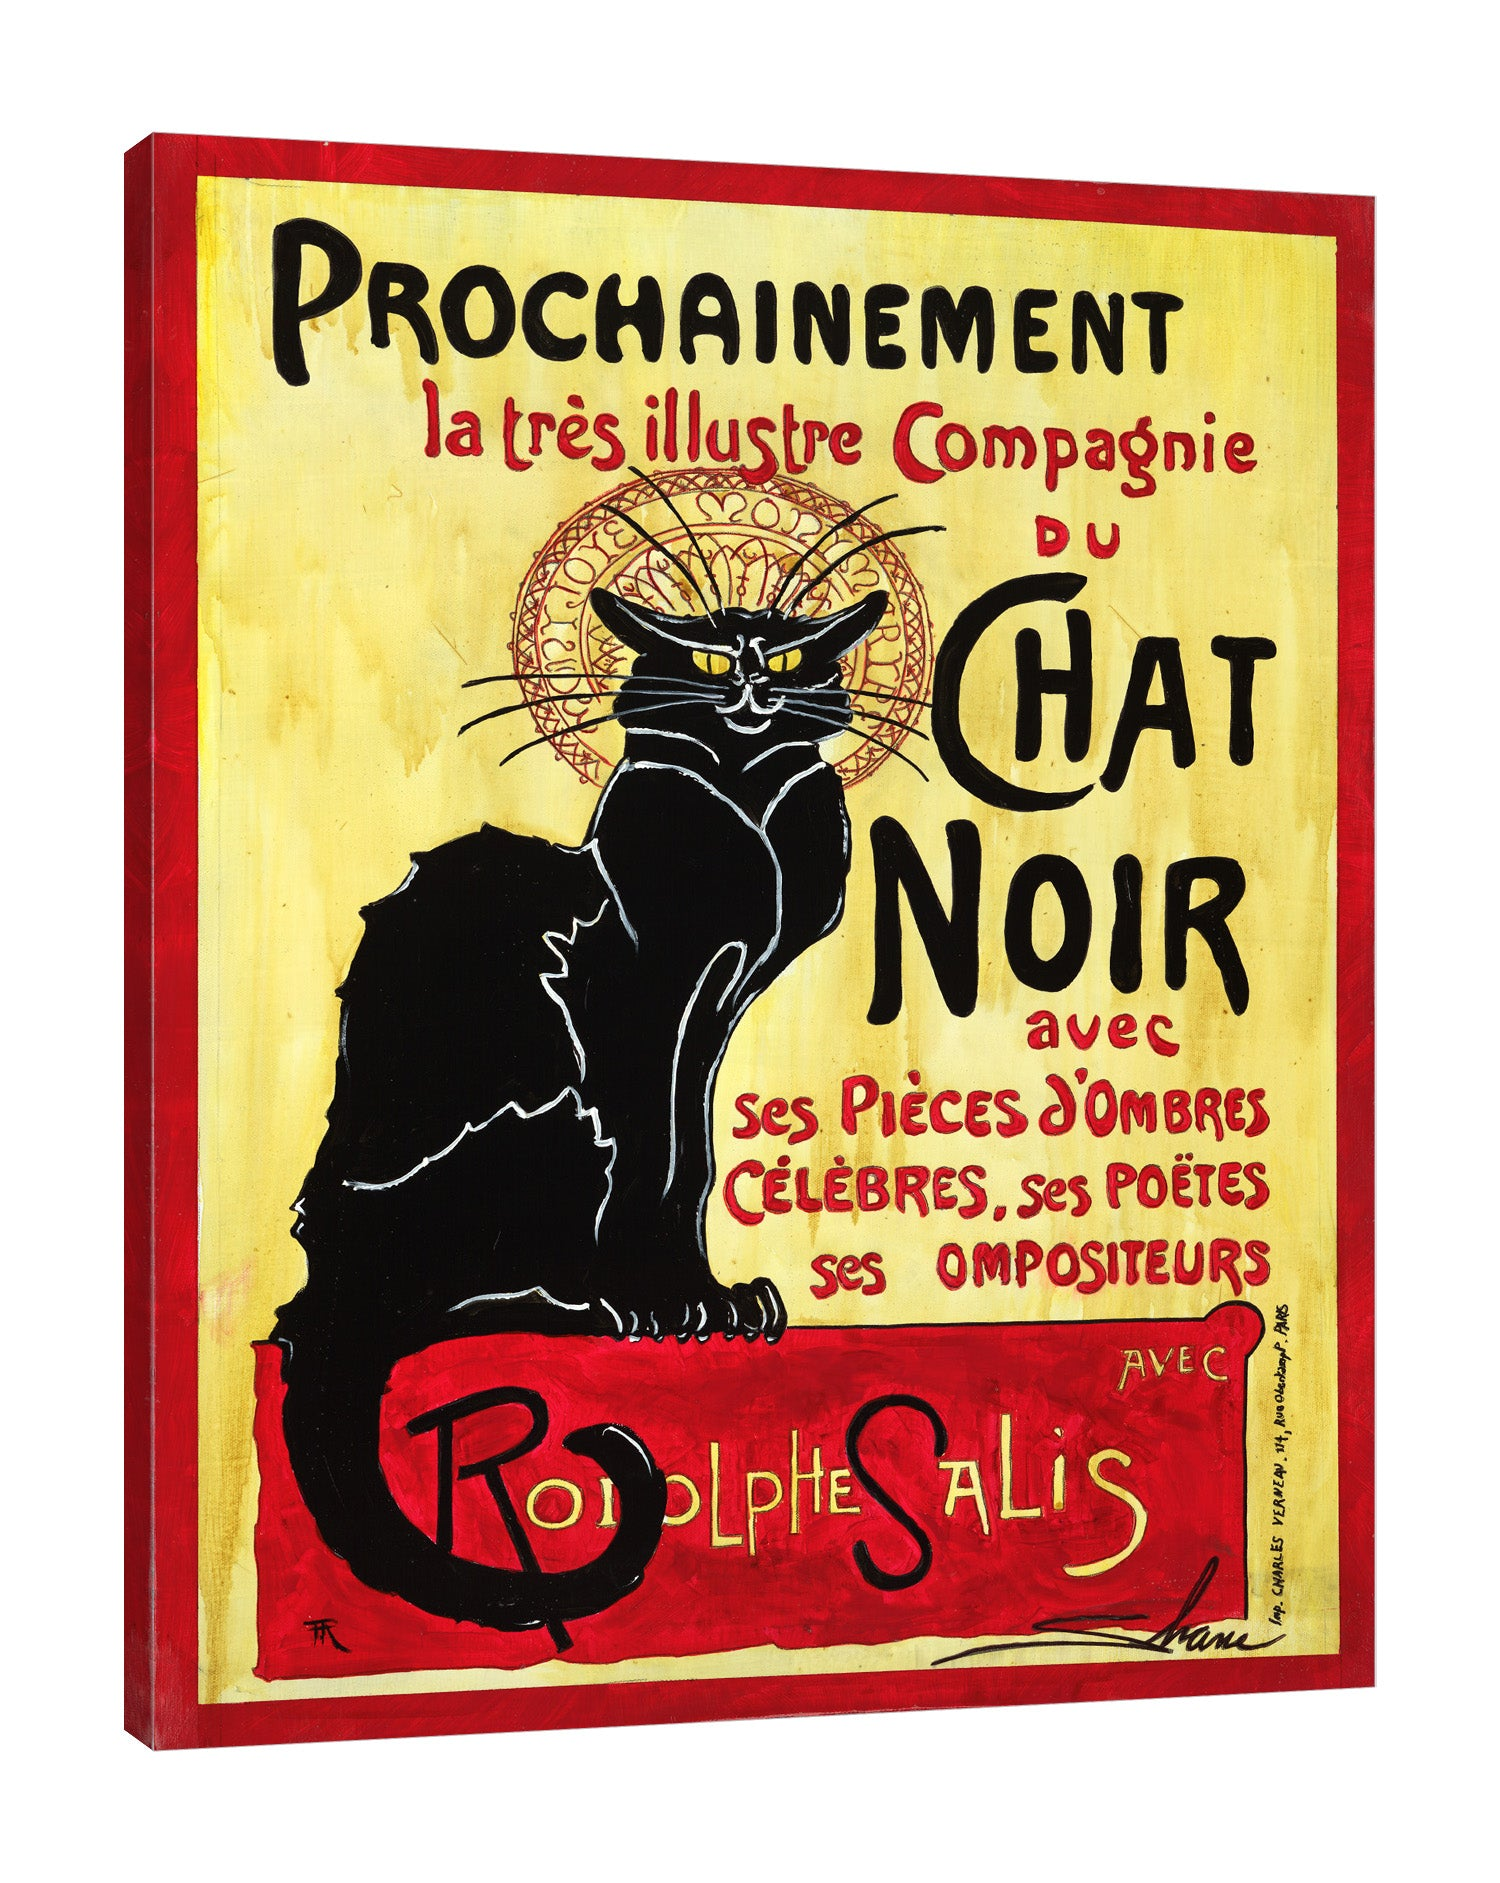 Shane-Miller,Vertical,4X5,Modern & Contemporary,Animals,Entertainment,animals,animal,black cat,cats,cat,words and phrases,words,chat noir,banner,banners,Red,Gold Yellow,Rose Brown,Black,Mist Gray,Sky Blue,Lime Green,Gray,Charcoal Gray,Purple